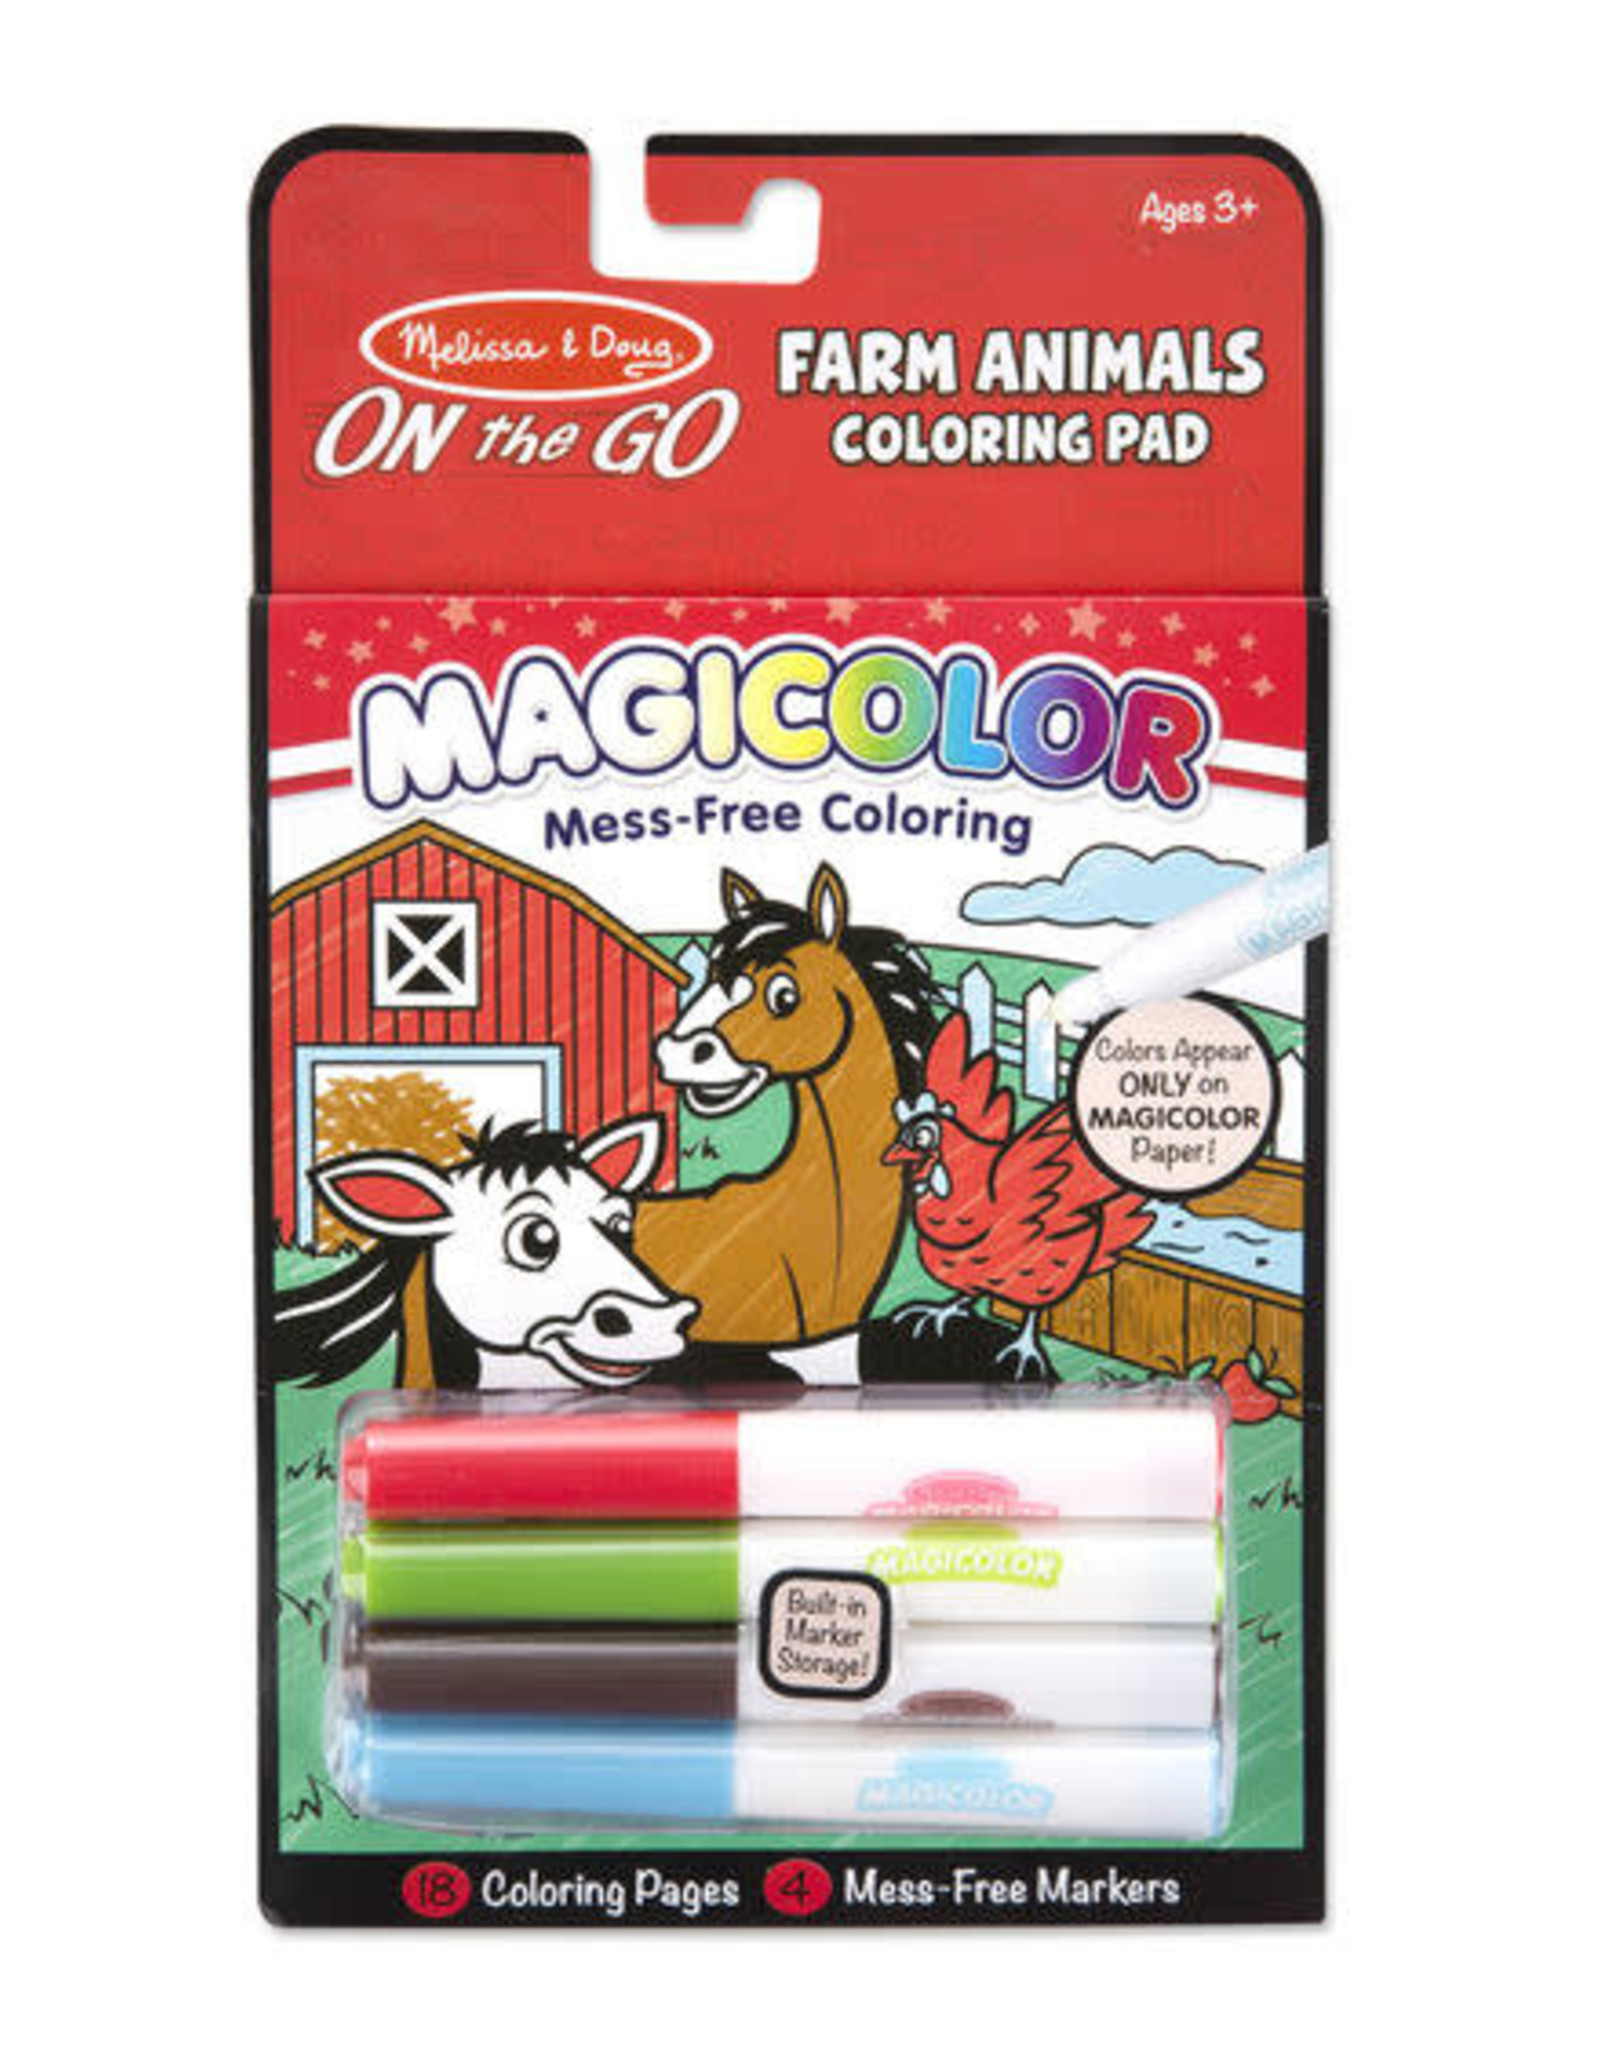 Melissa & Doug Melissa & Doug Magicolor Coloring Pad - Farm Animals